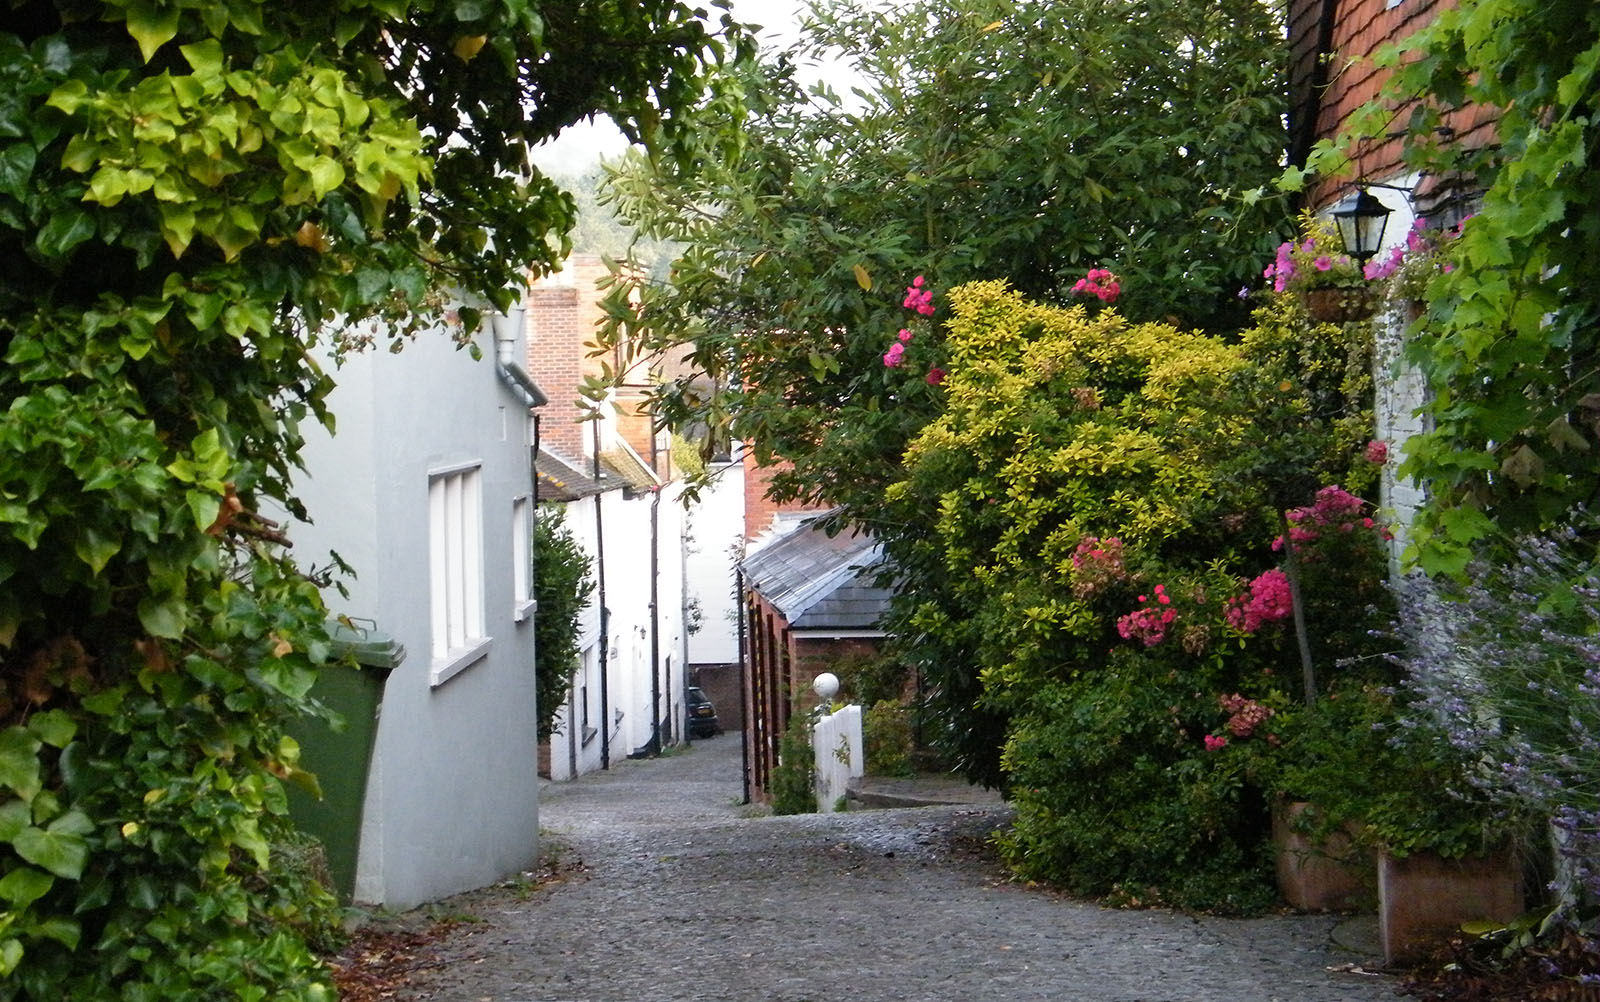 The Old Village, Royal Tunbridge Wells (Kate Griffiths)